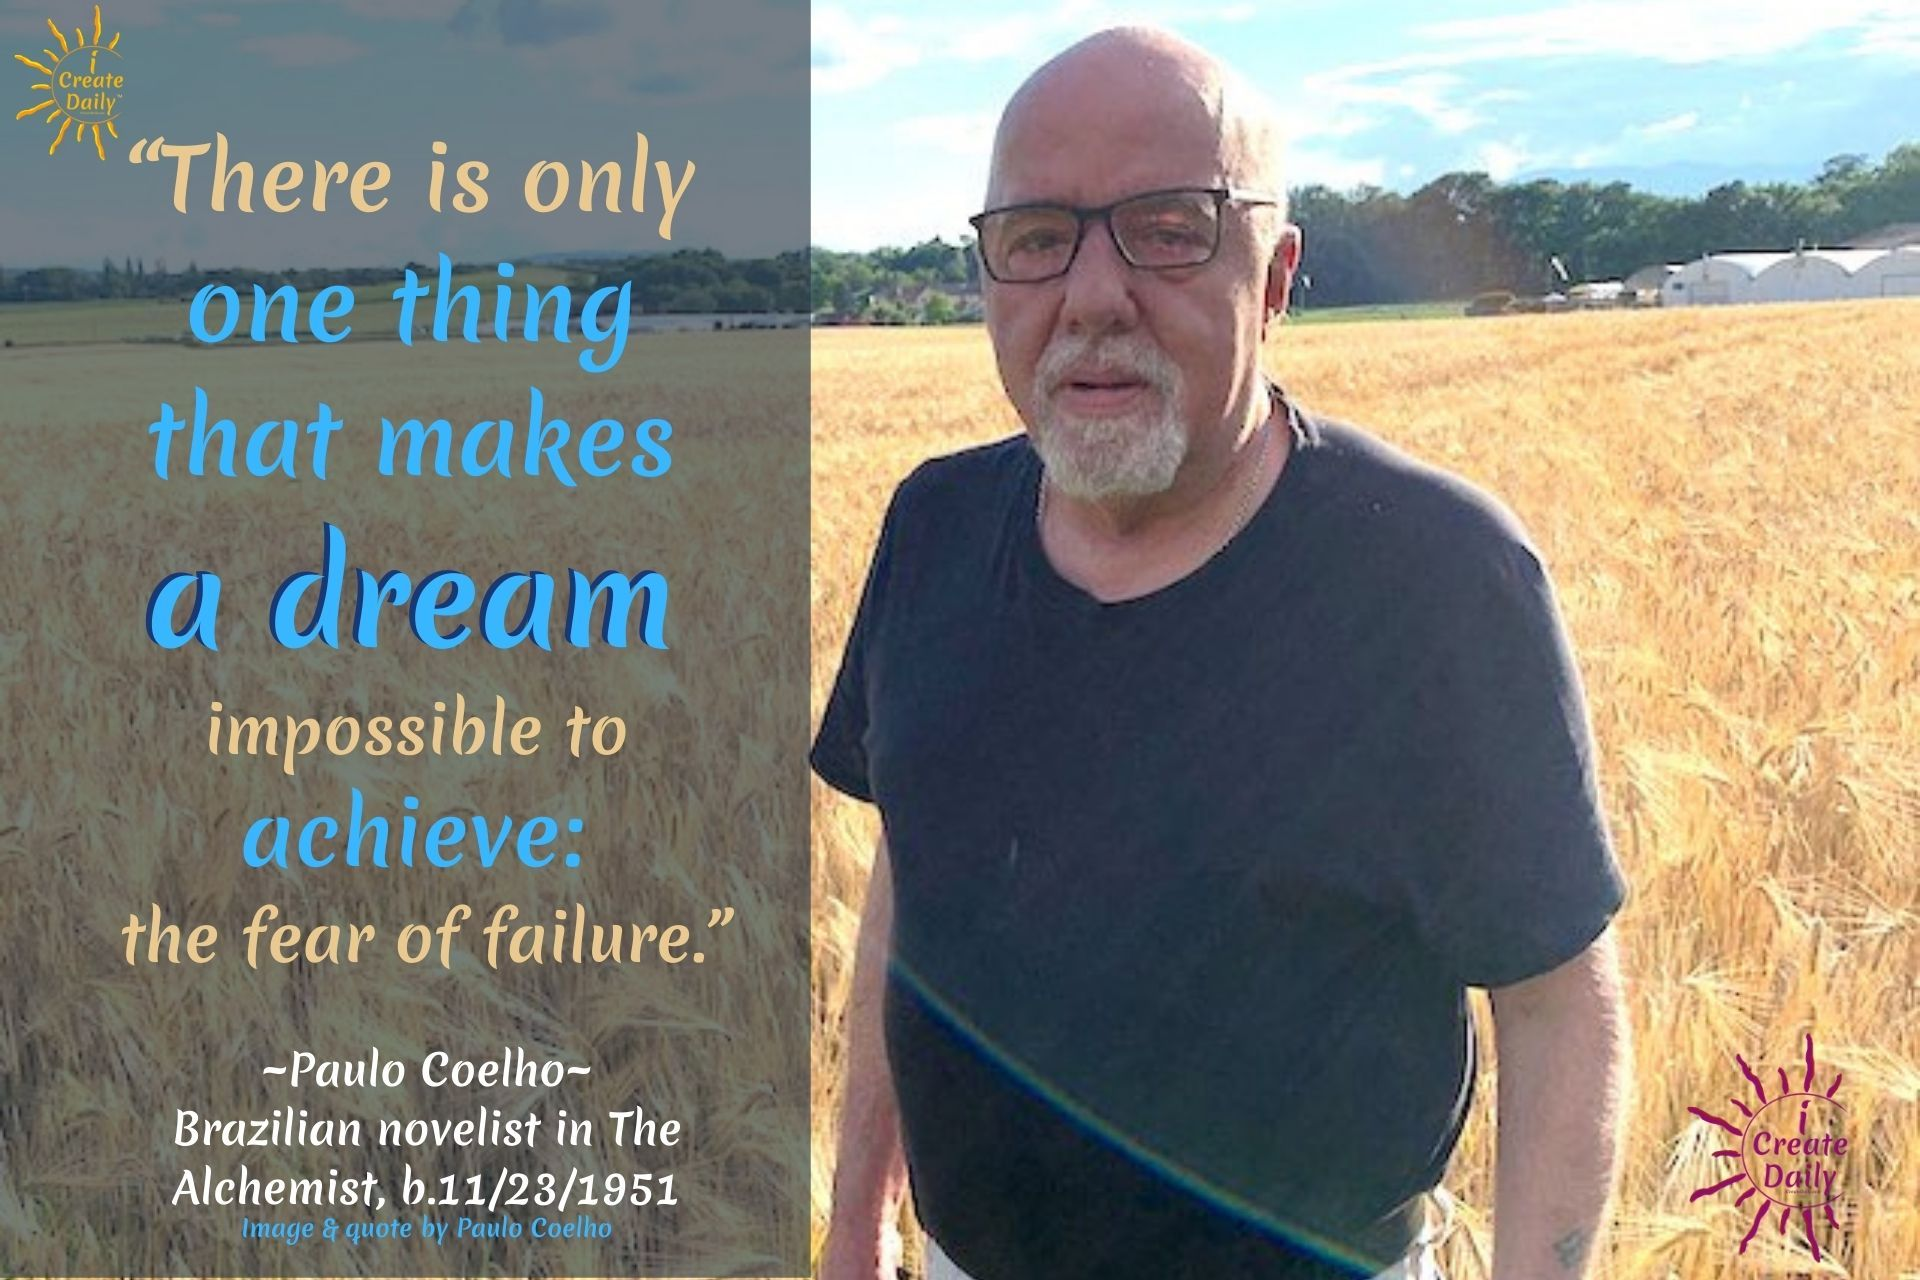 Paulo Coelho Quote on failure.